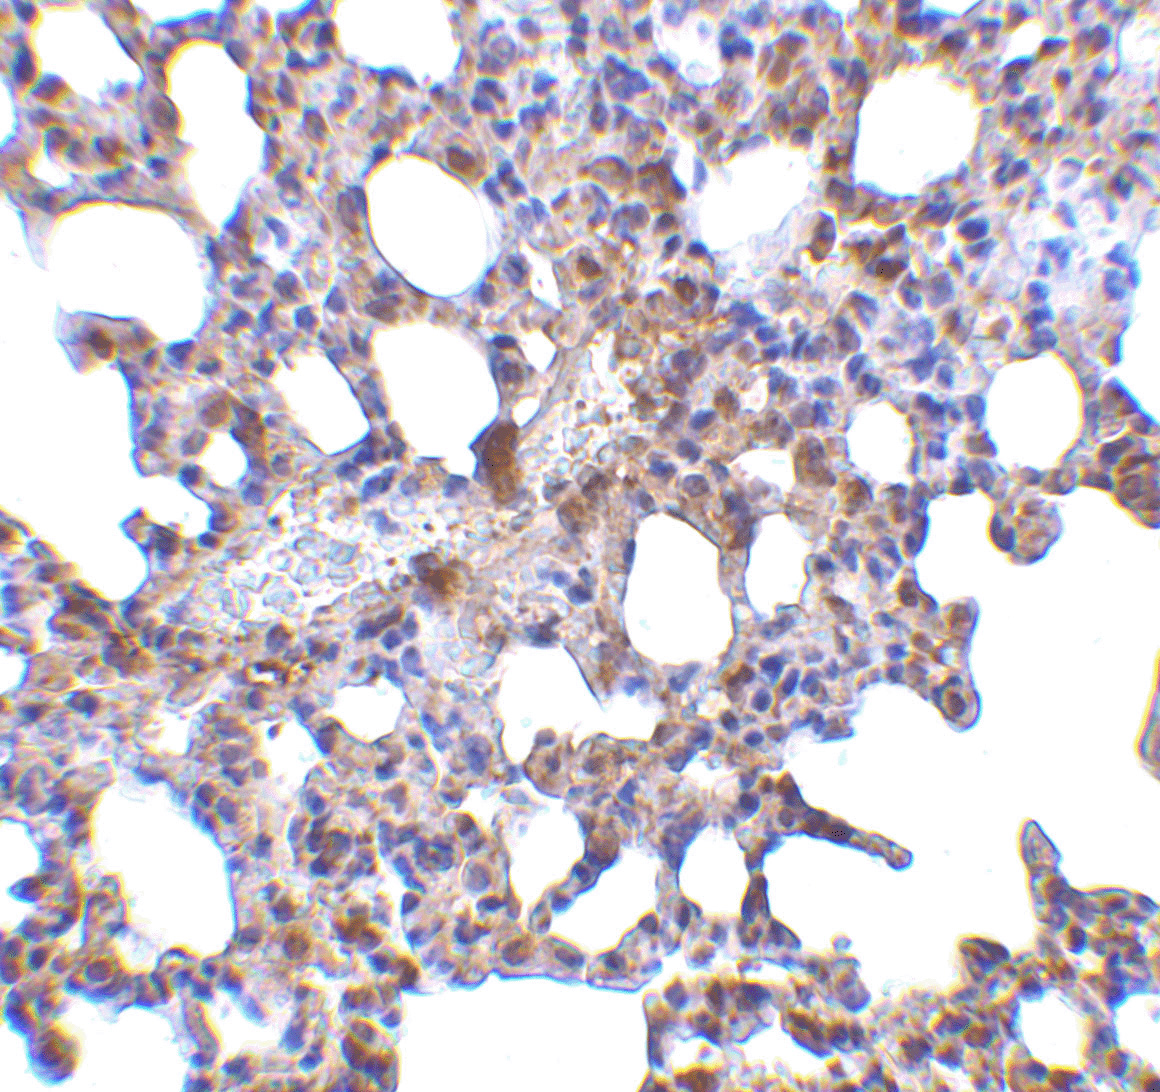 Blimp-1 Antibody (OAPB00471) in Mouse Lung cells using Immunohistochemistry